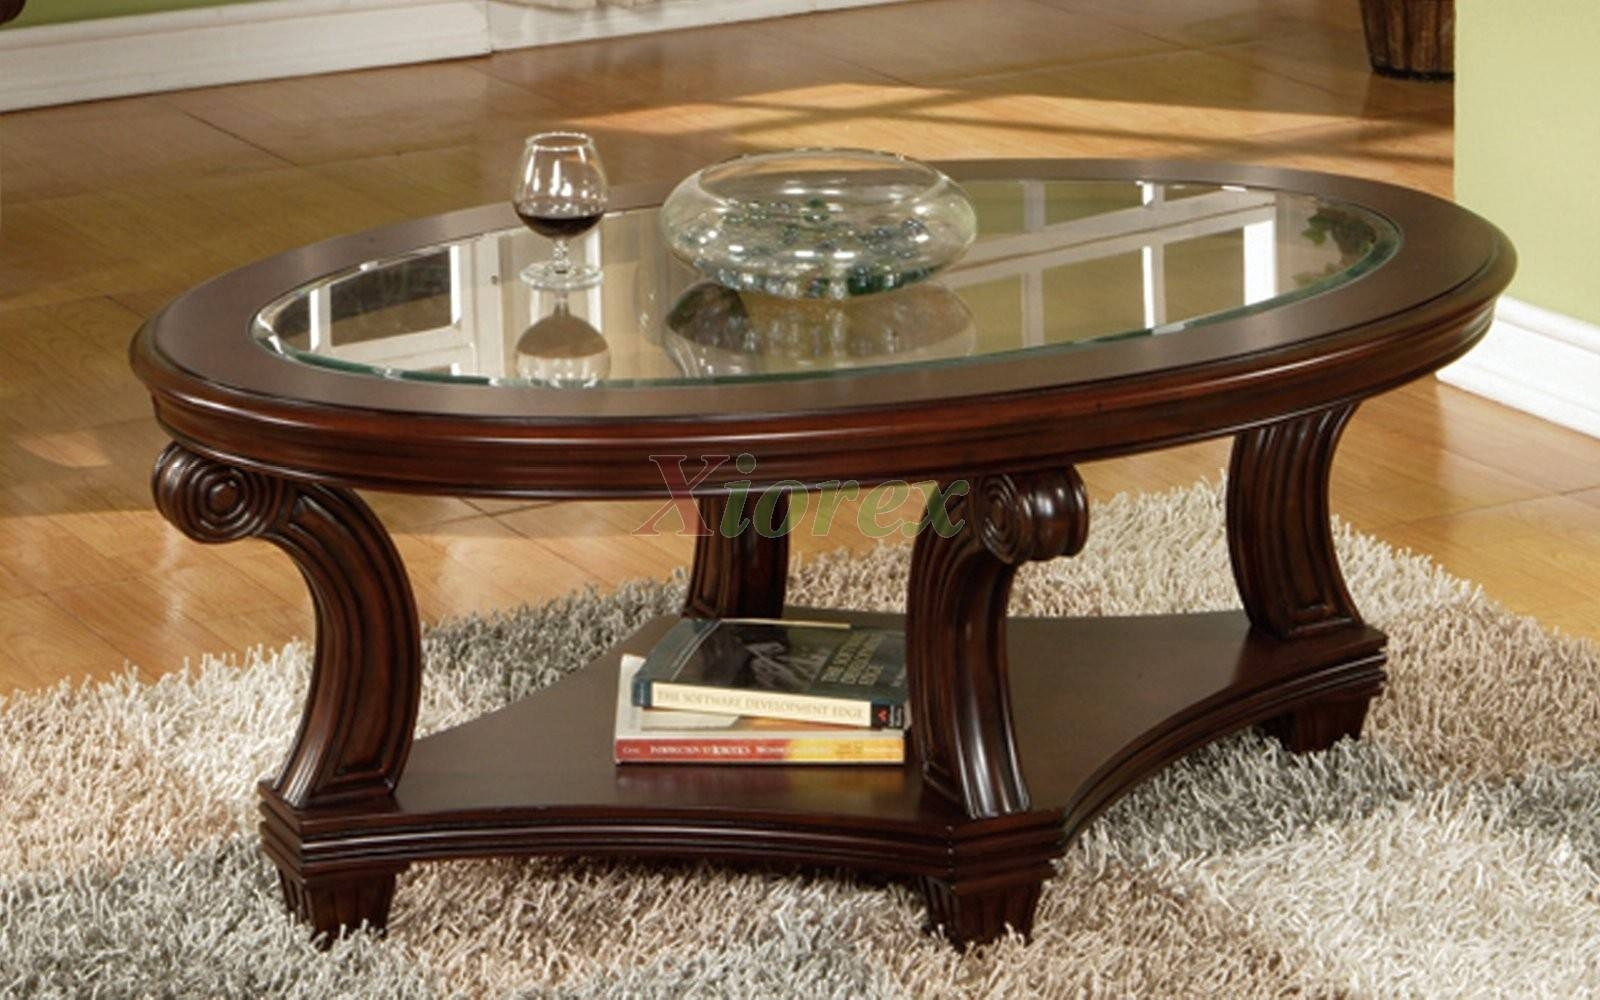 Glass Top Coffee Tables | Xiorex Furniture Stores pertaining to Glass Topped Coffee Tables (Image 10 of 15)